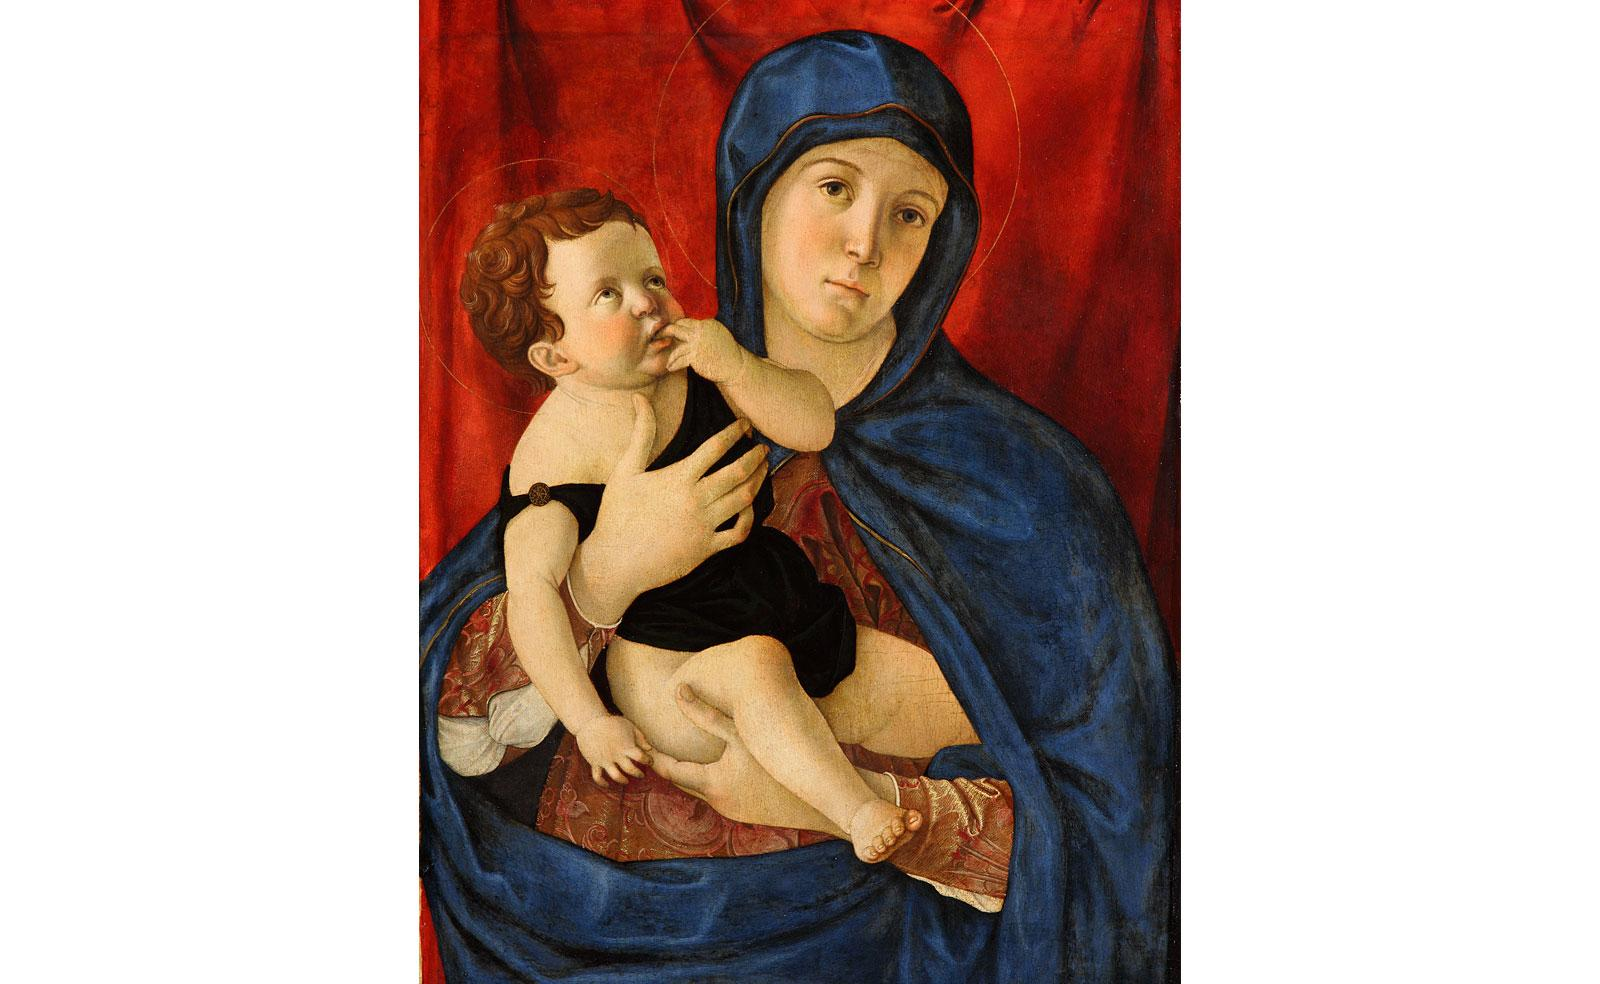 Madonna with child by Giovanni Bellini.